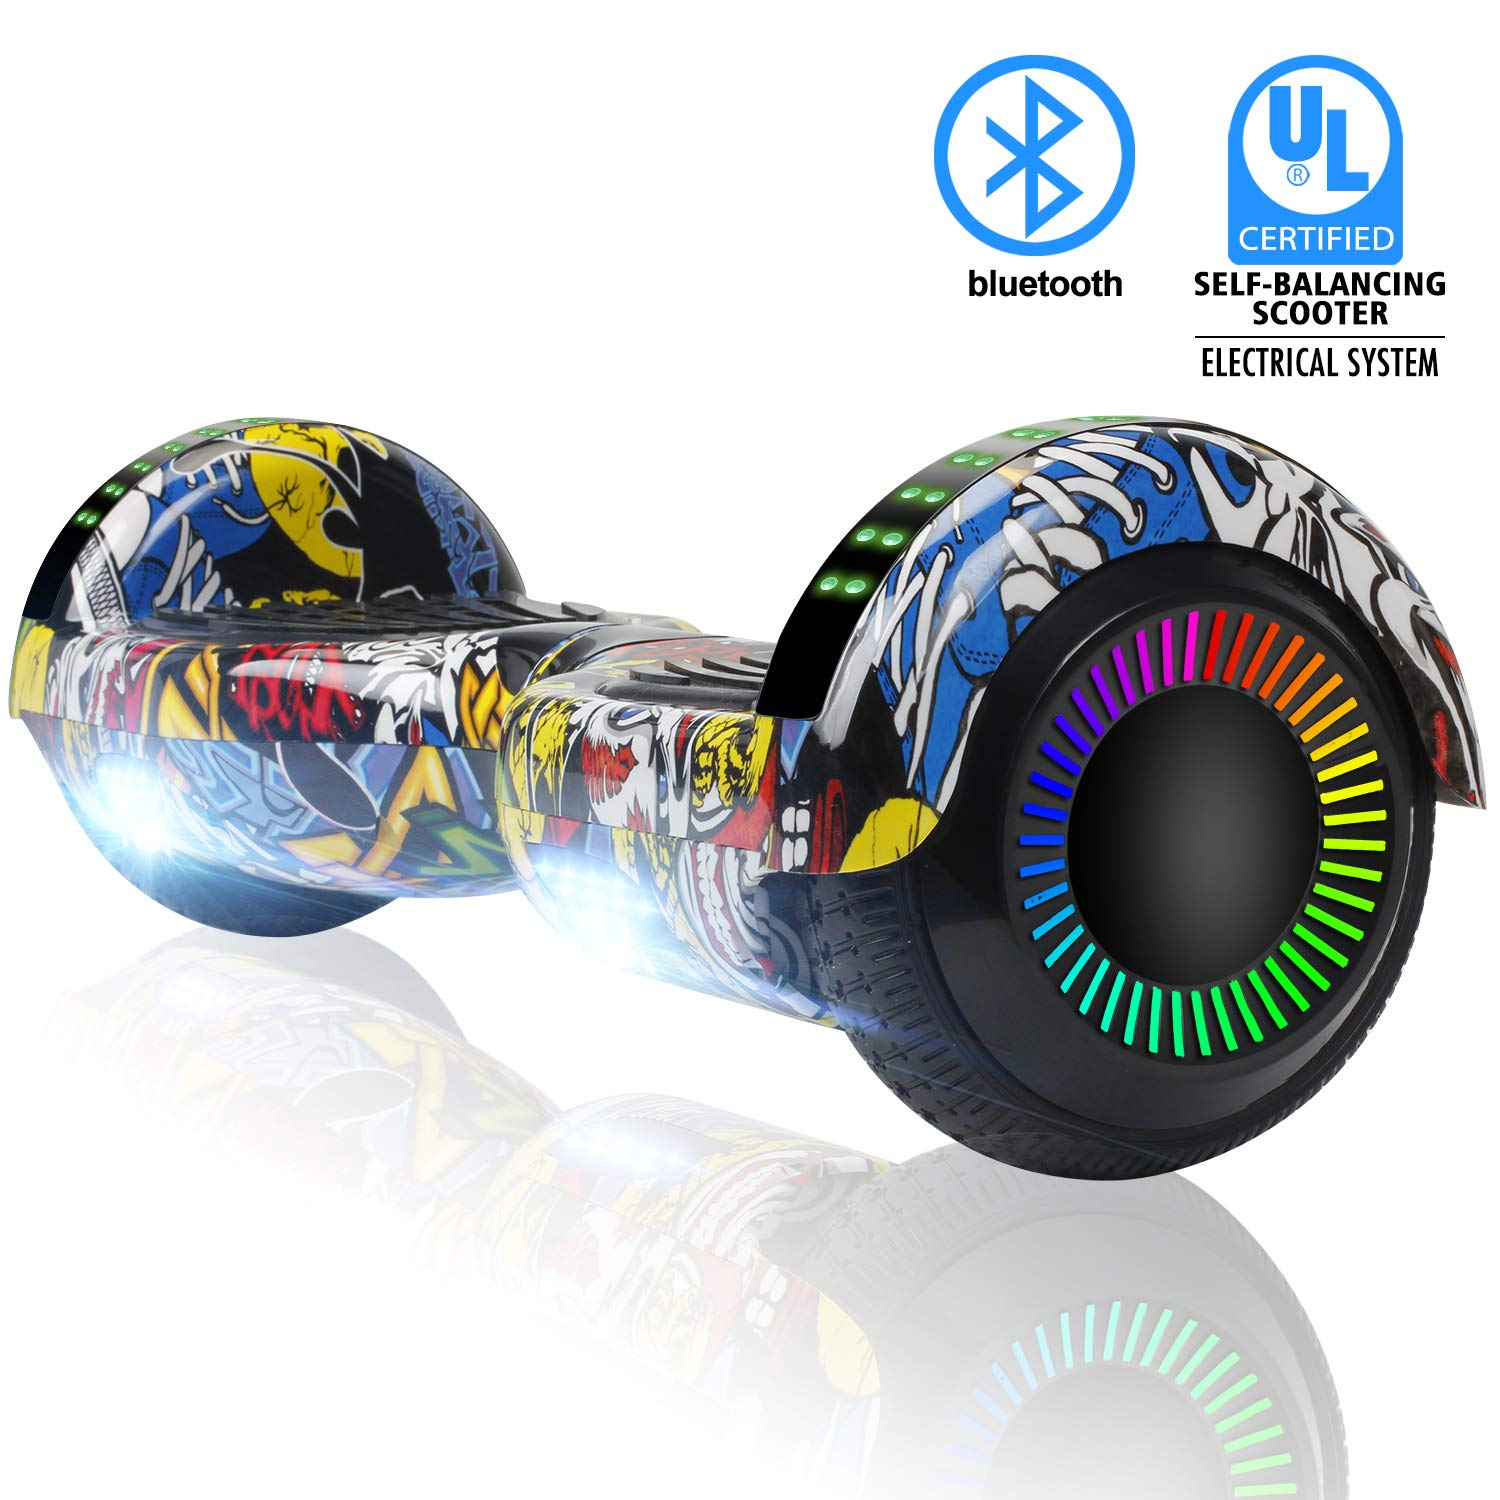 SWEETBUY Hoverboard Two-Wheel Self Balancing Electric Scooter UL 2272 Certified,6.5 inch Self Balancing Scooter with Carry Bag